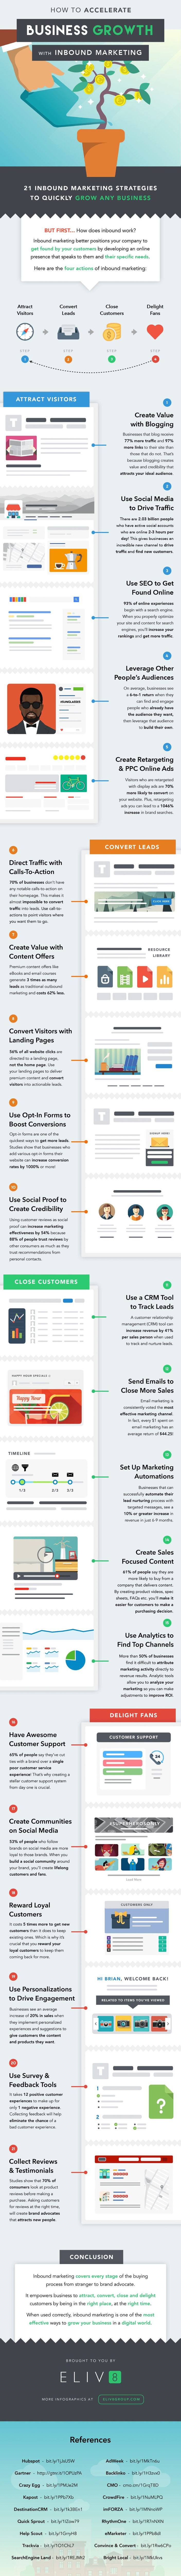 How To Accelerate Business Growth with Inbound Marketing - #Infographic